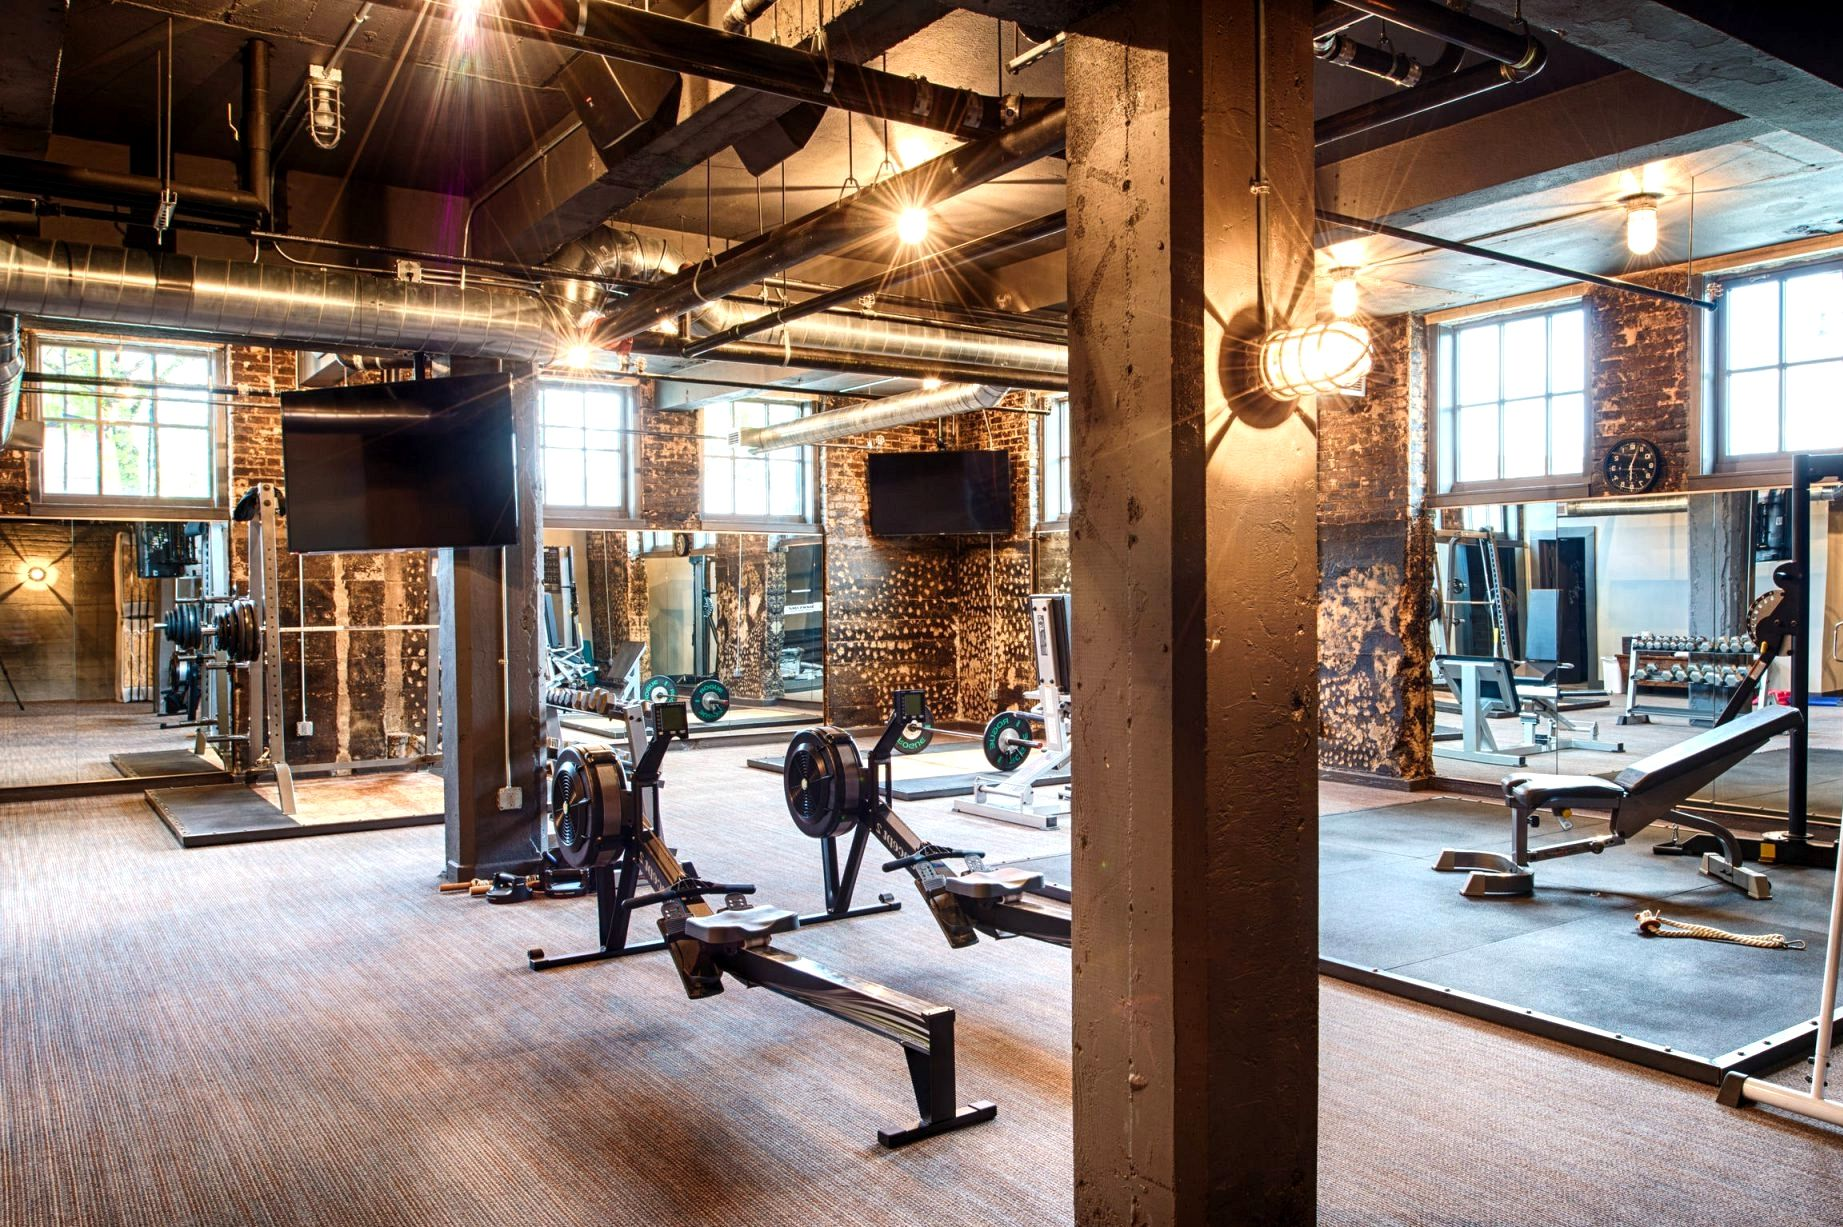 Fargo Laundry Industrial Home Gym Industrial House Home Gym Home Gyms Ideas